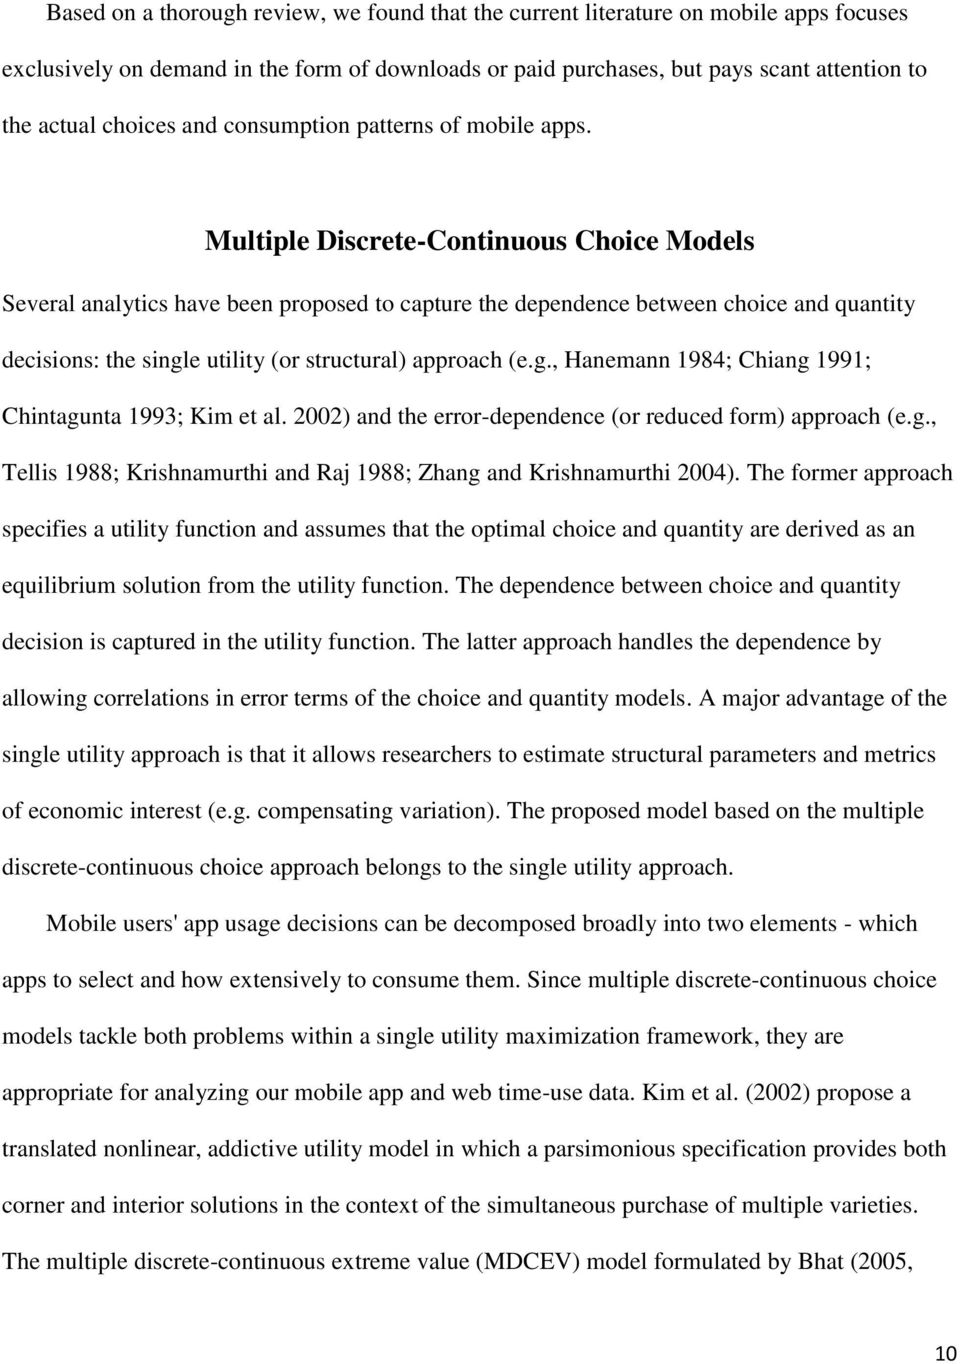 Multiple Discrete-Continuous Choice Models Several analytics have been proposed to capture the dependence between choice and quantity decisions: the singl